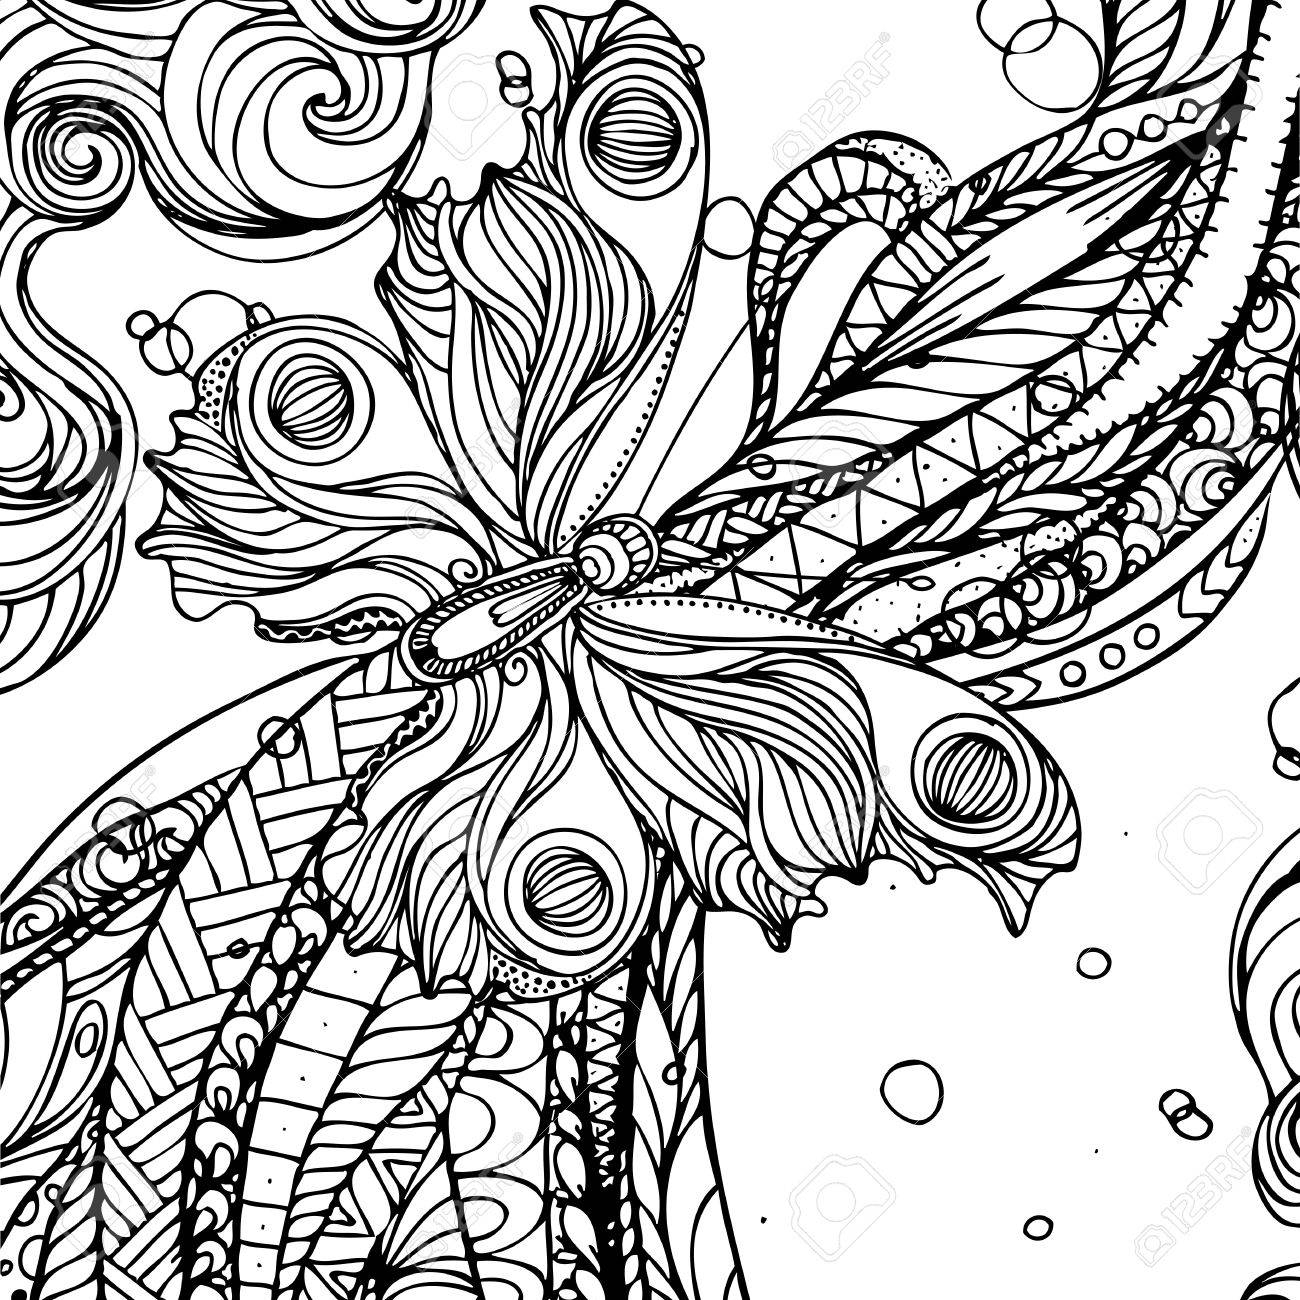 1300x1300 Hand Drawn Ink Doodle Flowing Hair And Butterfly On White